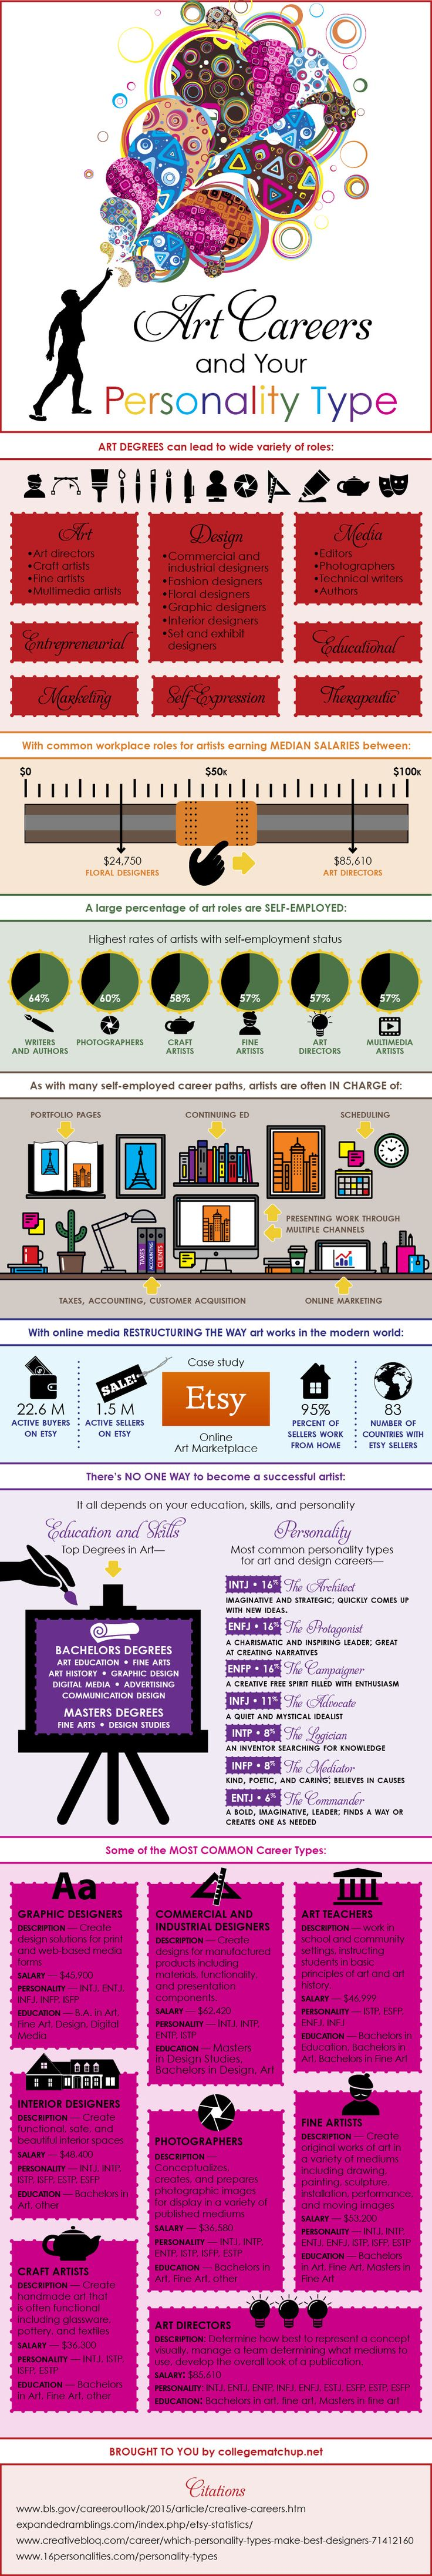 Art Careers By Personality Type - a cool infographic (and a link to take your personality test)